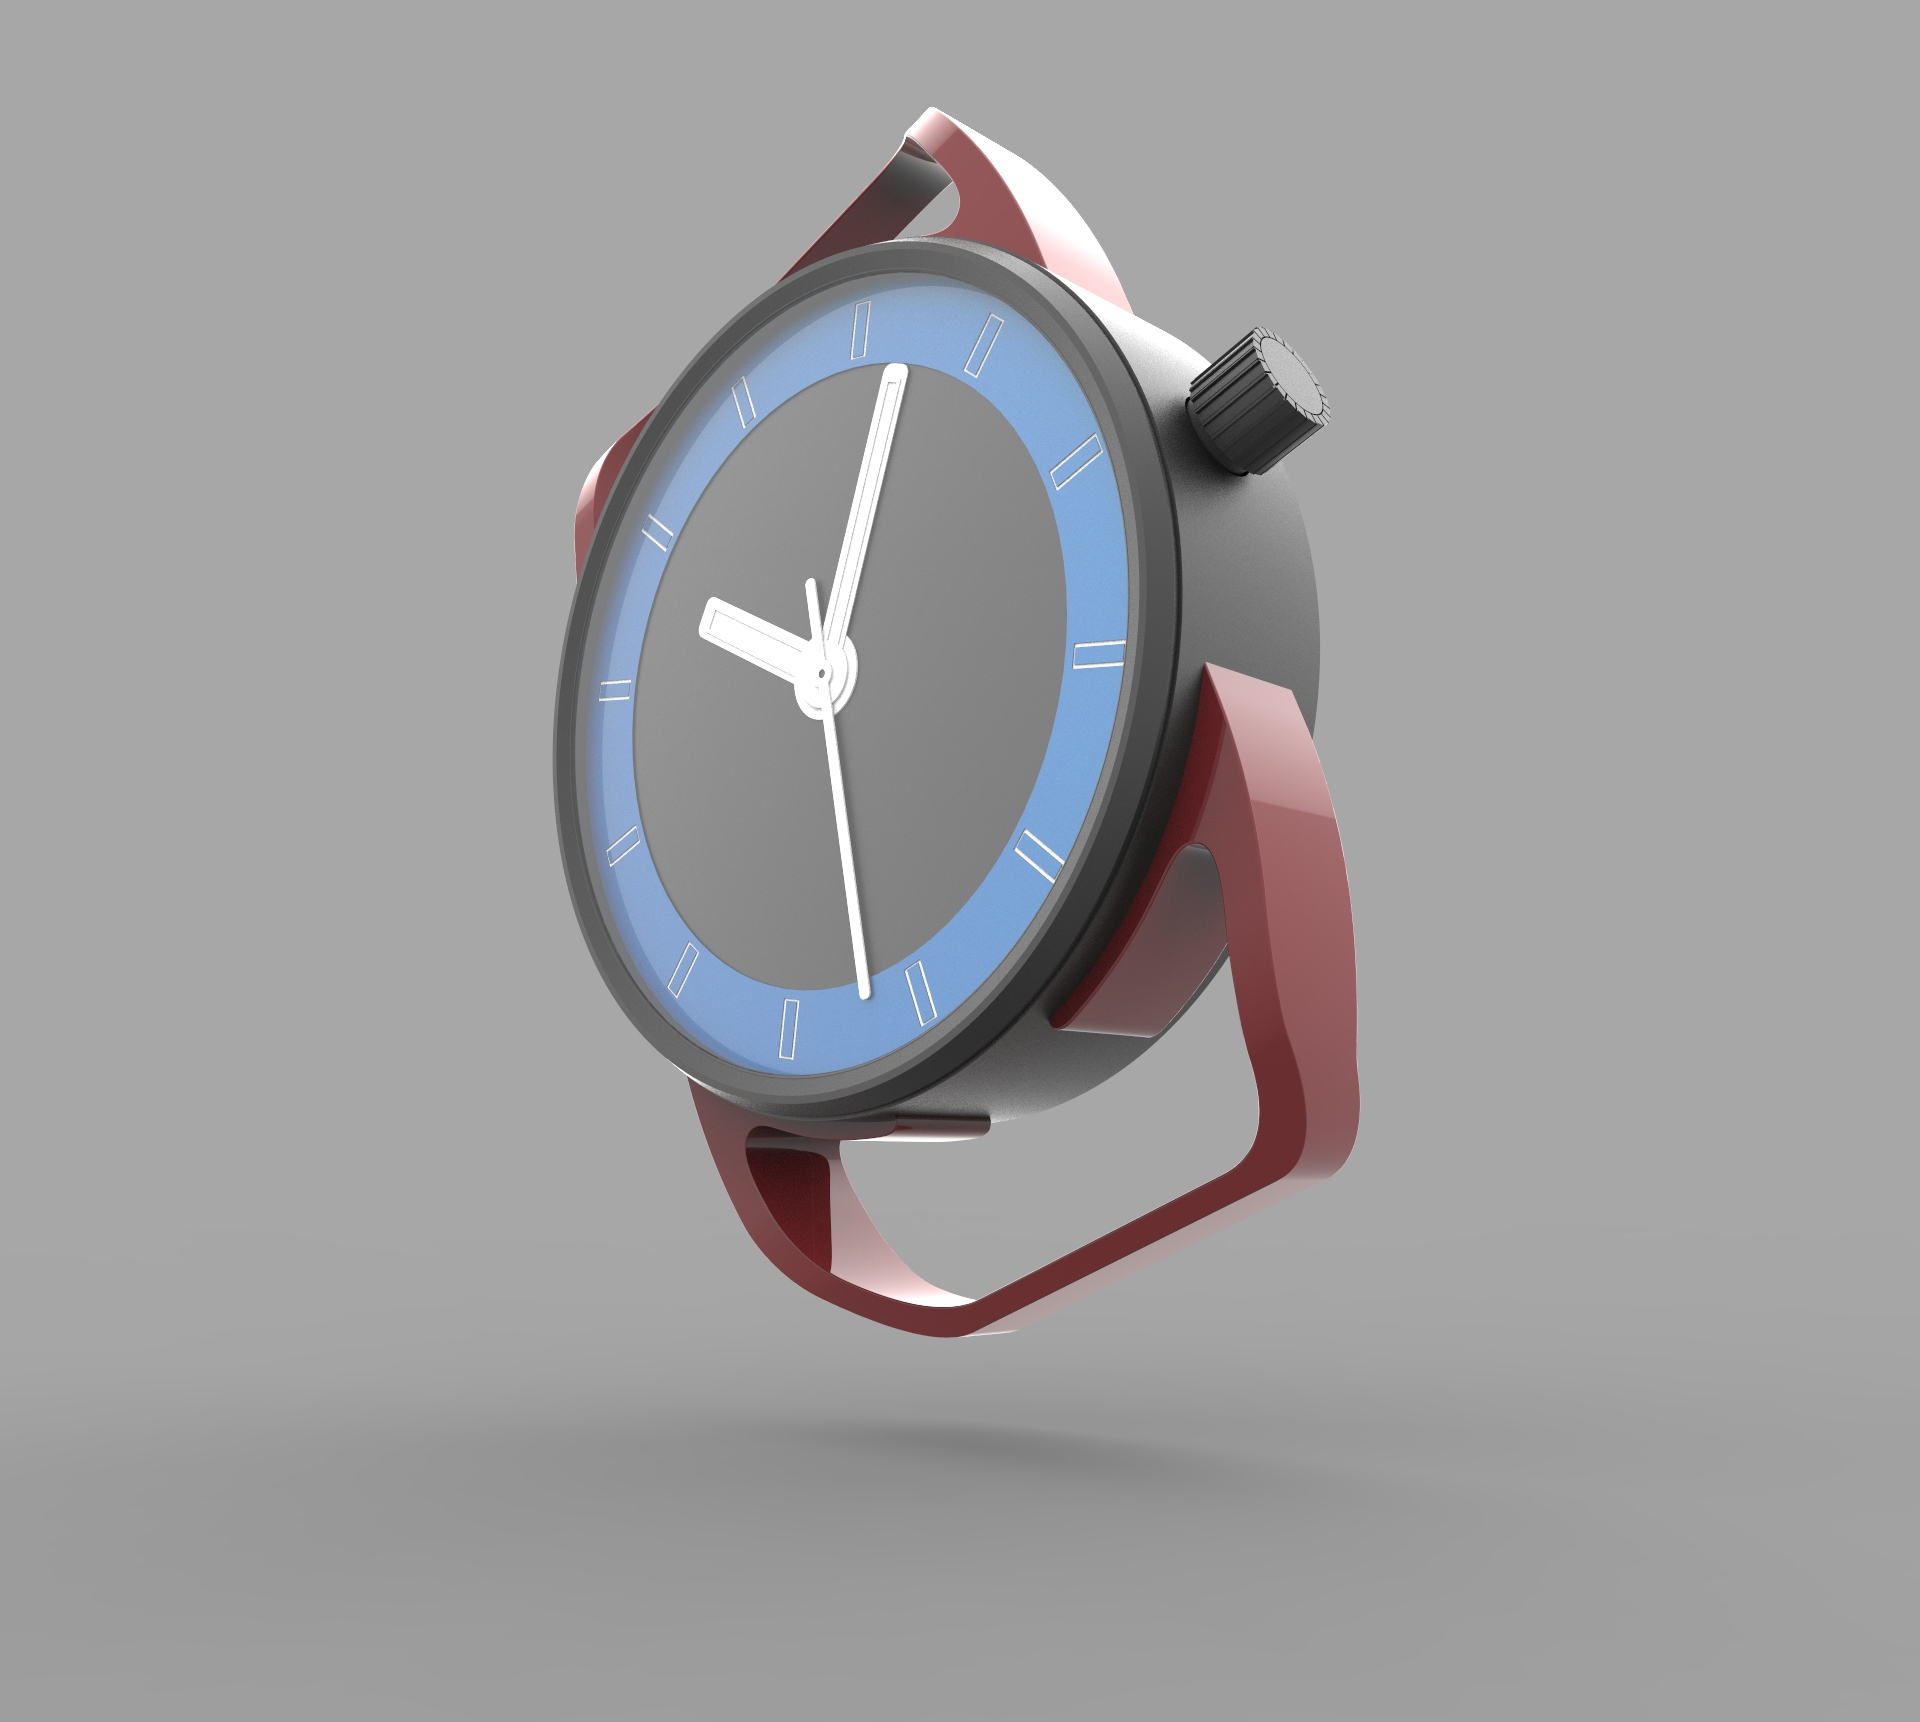 Watch Design Keyshot Render